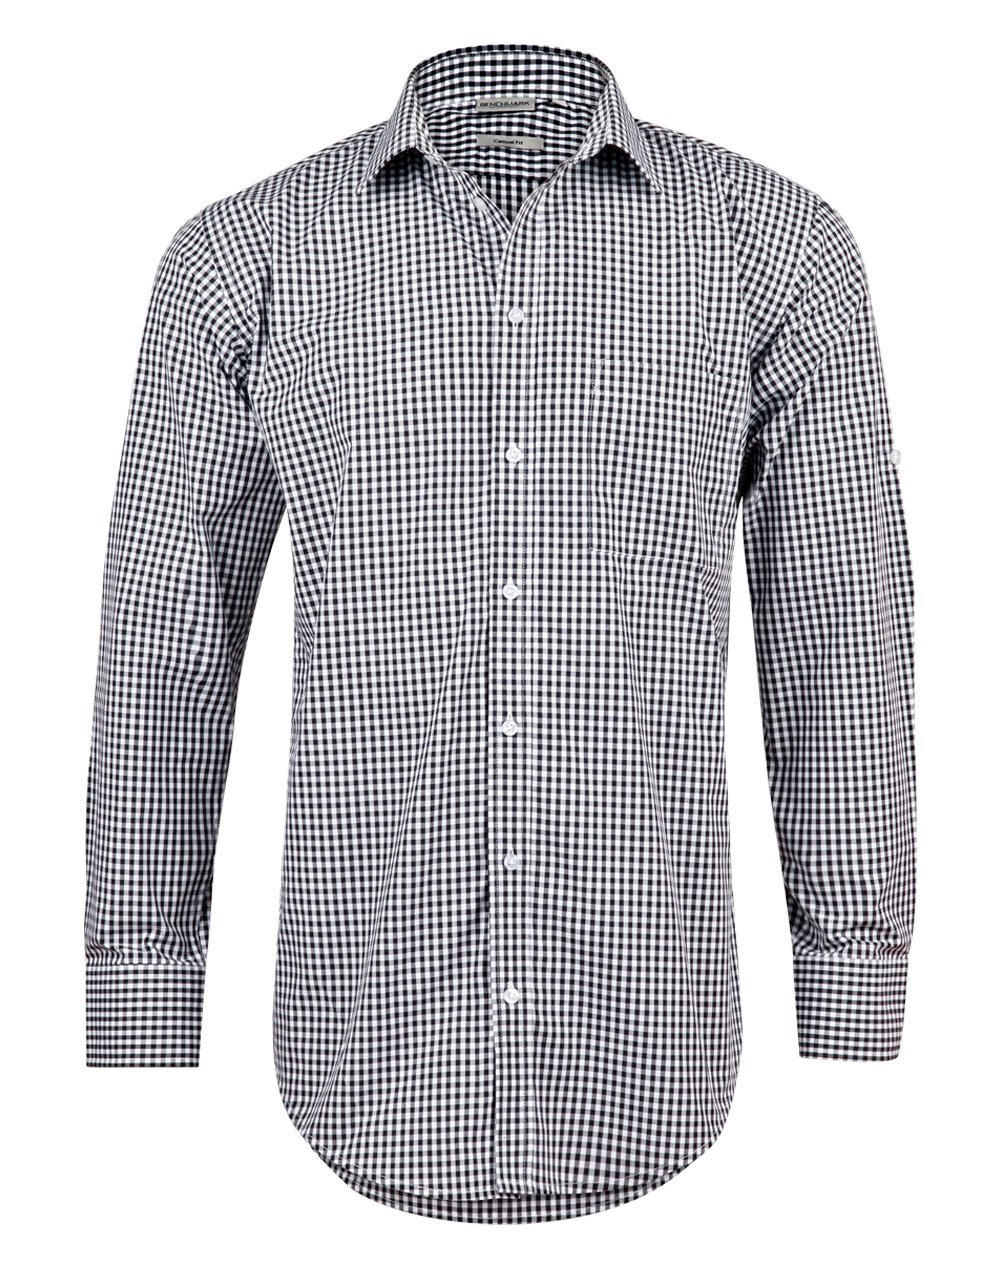 Men's Gingham Check L/S Shirt with Roll-up Tab Sleeve